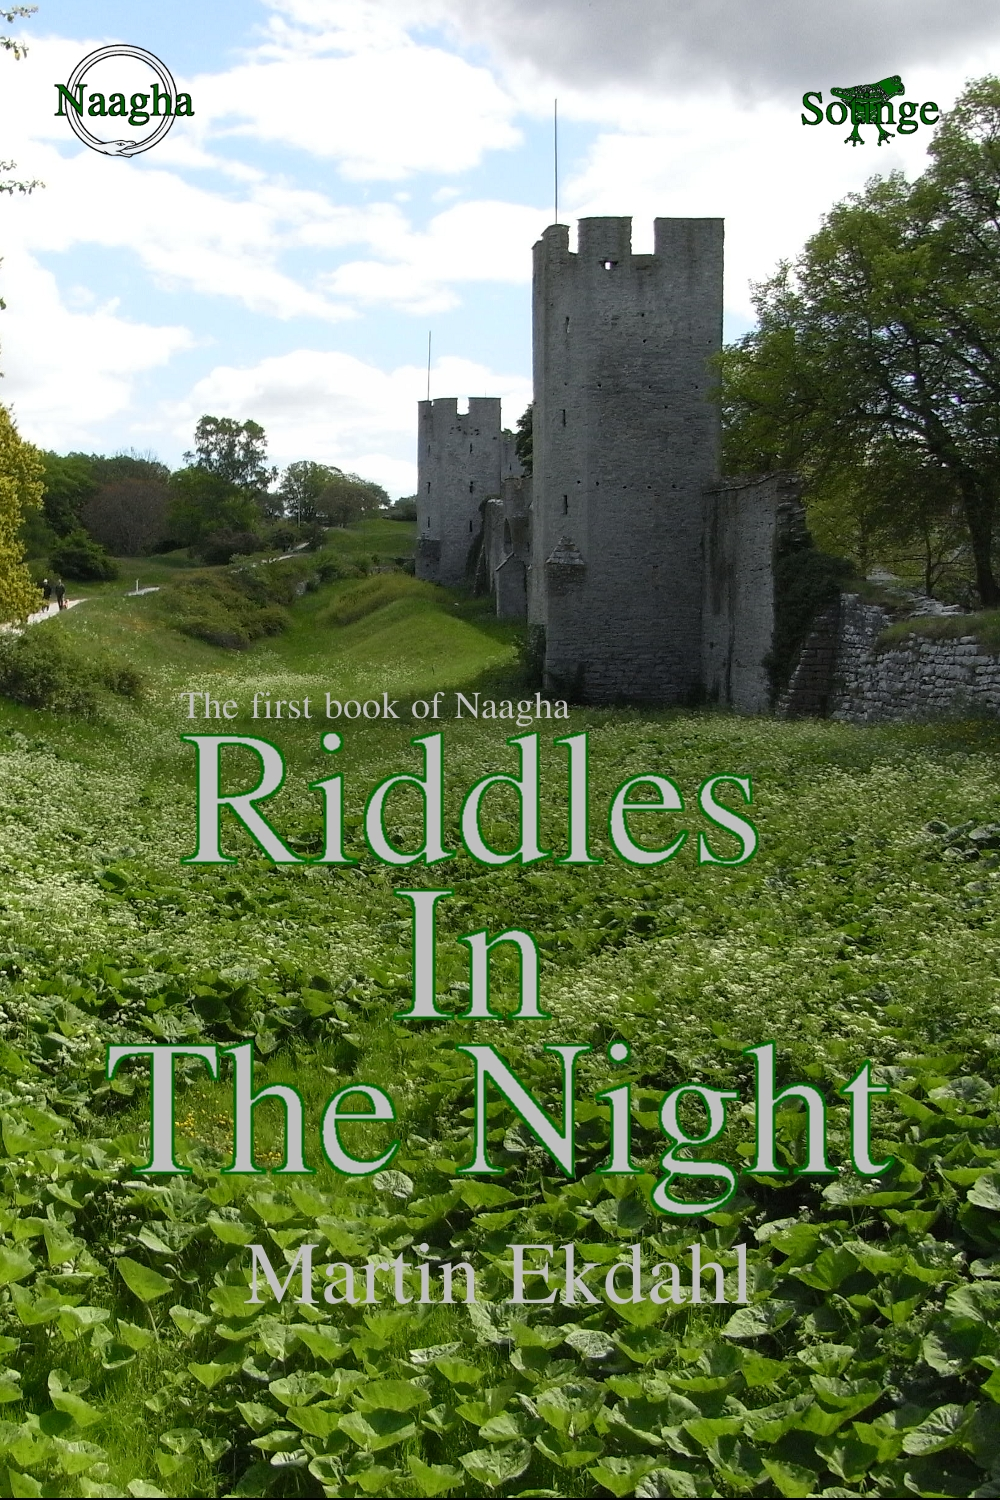 Book cover for Riddles in the night